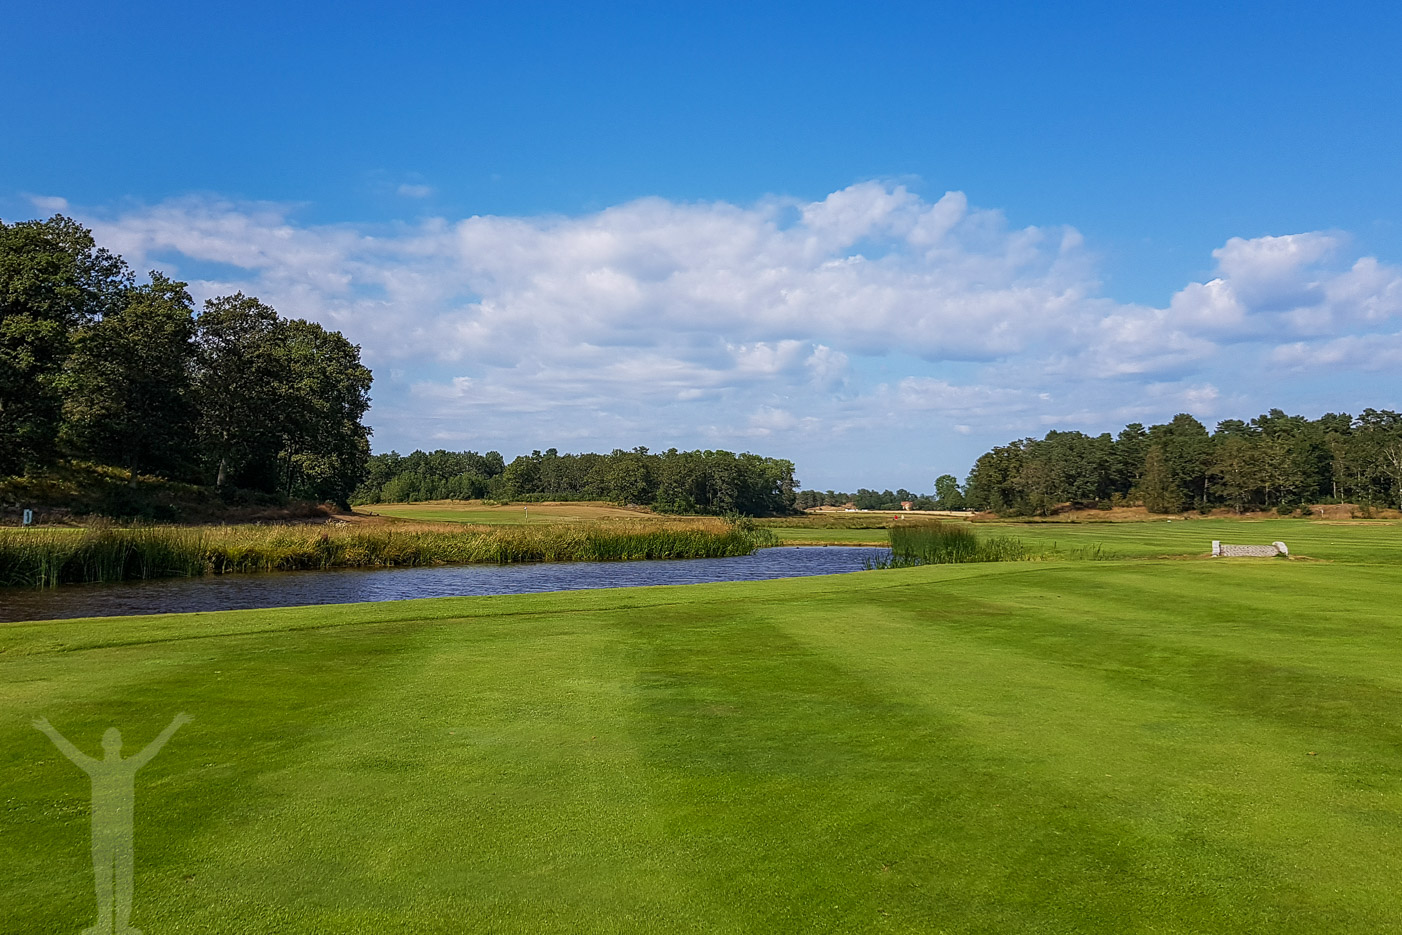 Fairways var i toppskick